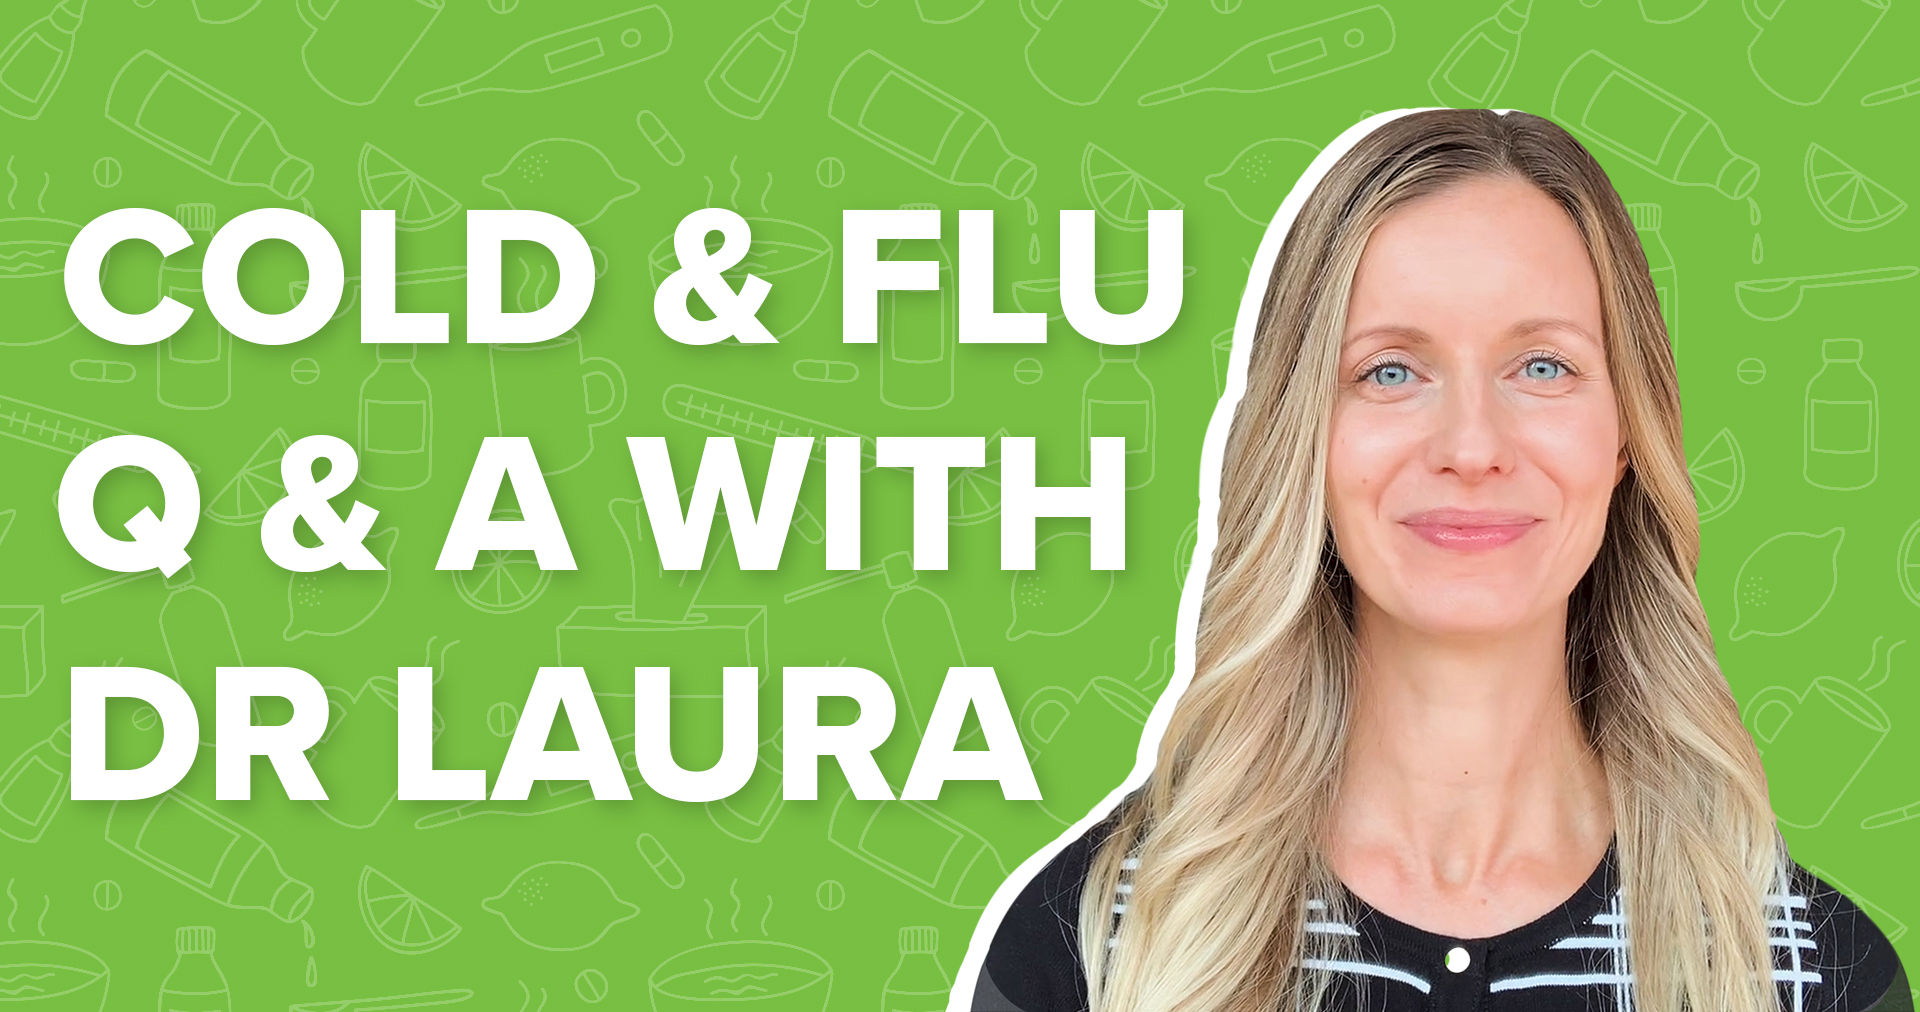 Dr. Laura on Green background with White text